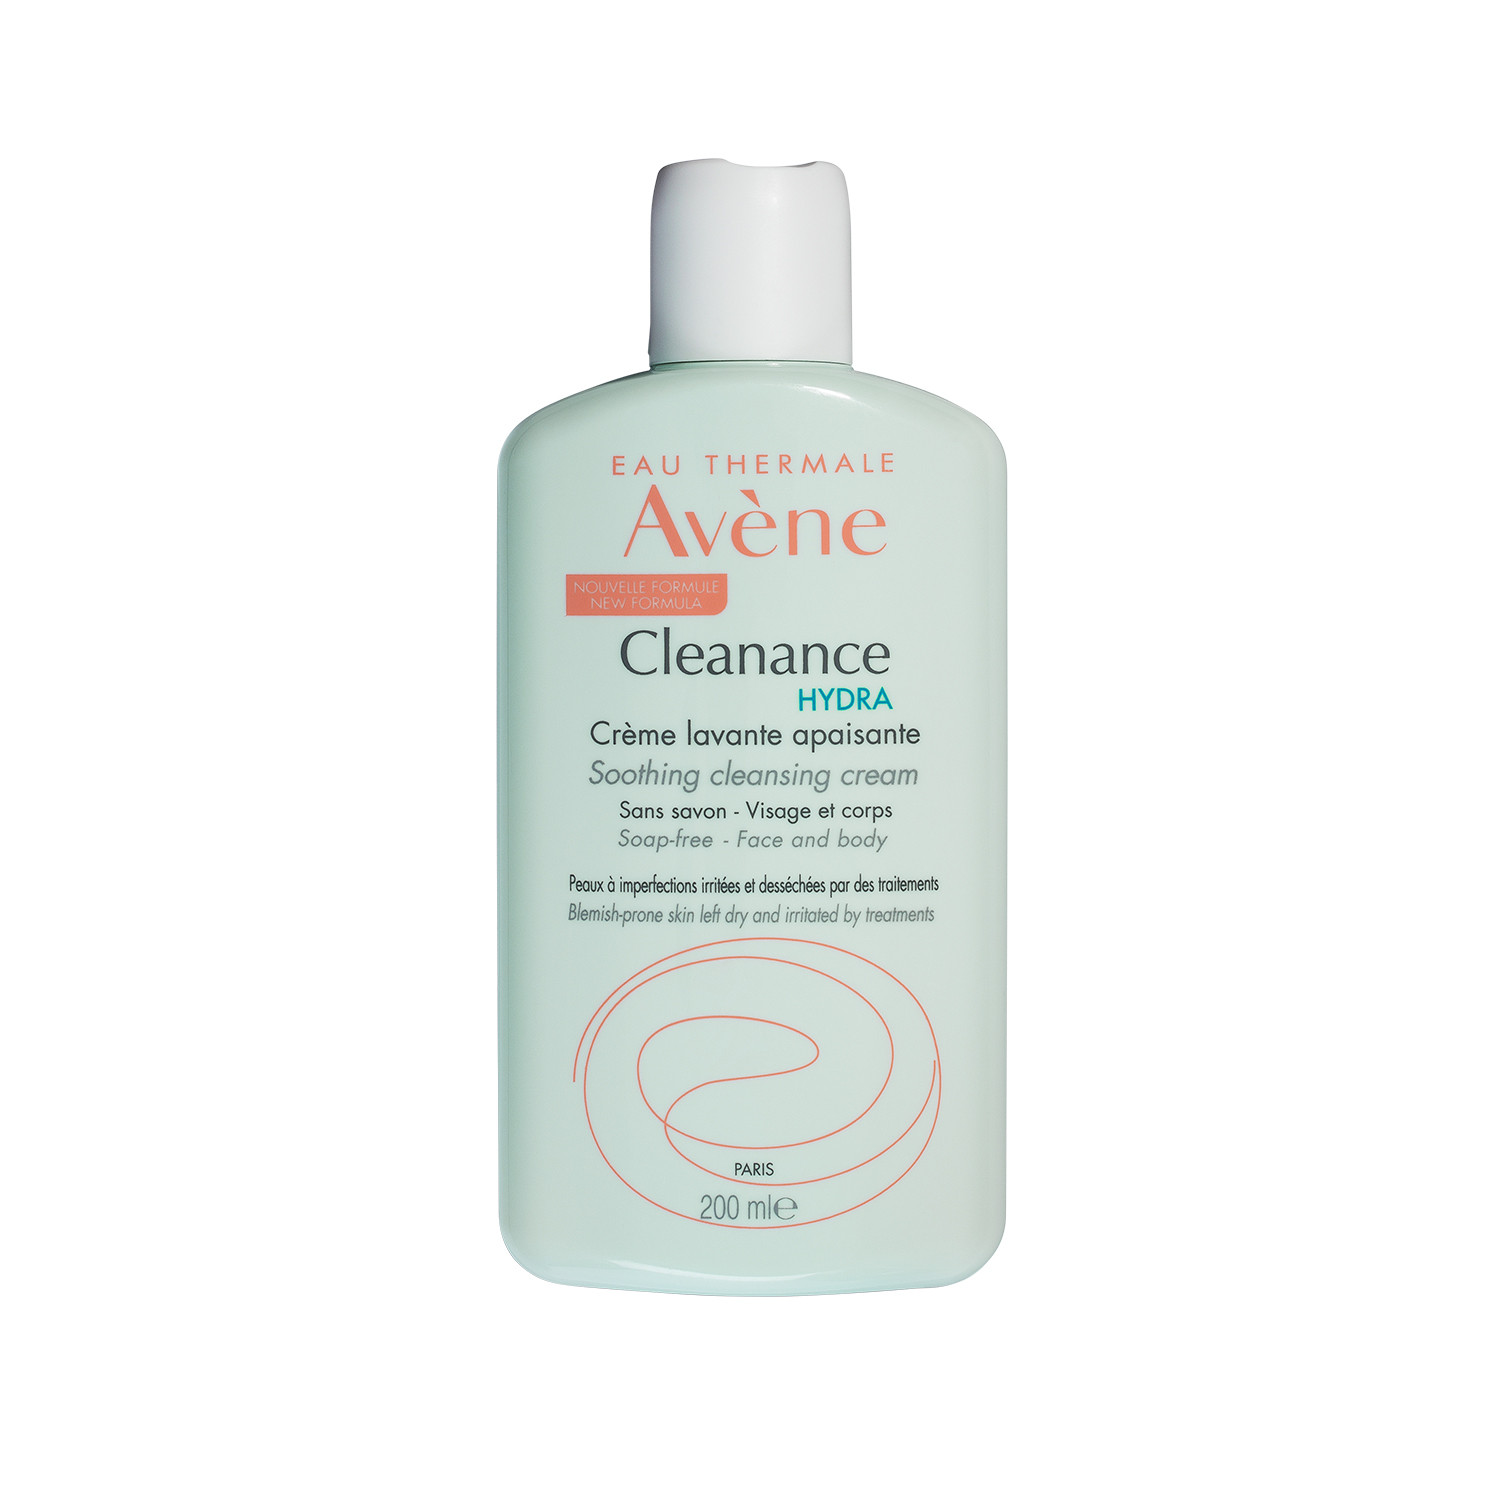 Cleanance HYDRA Soothing Cleansing Cream by Avène